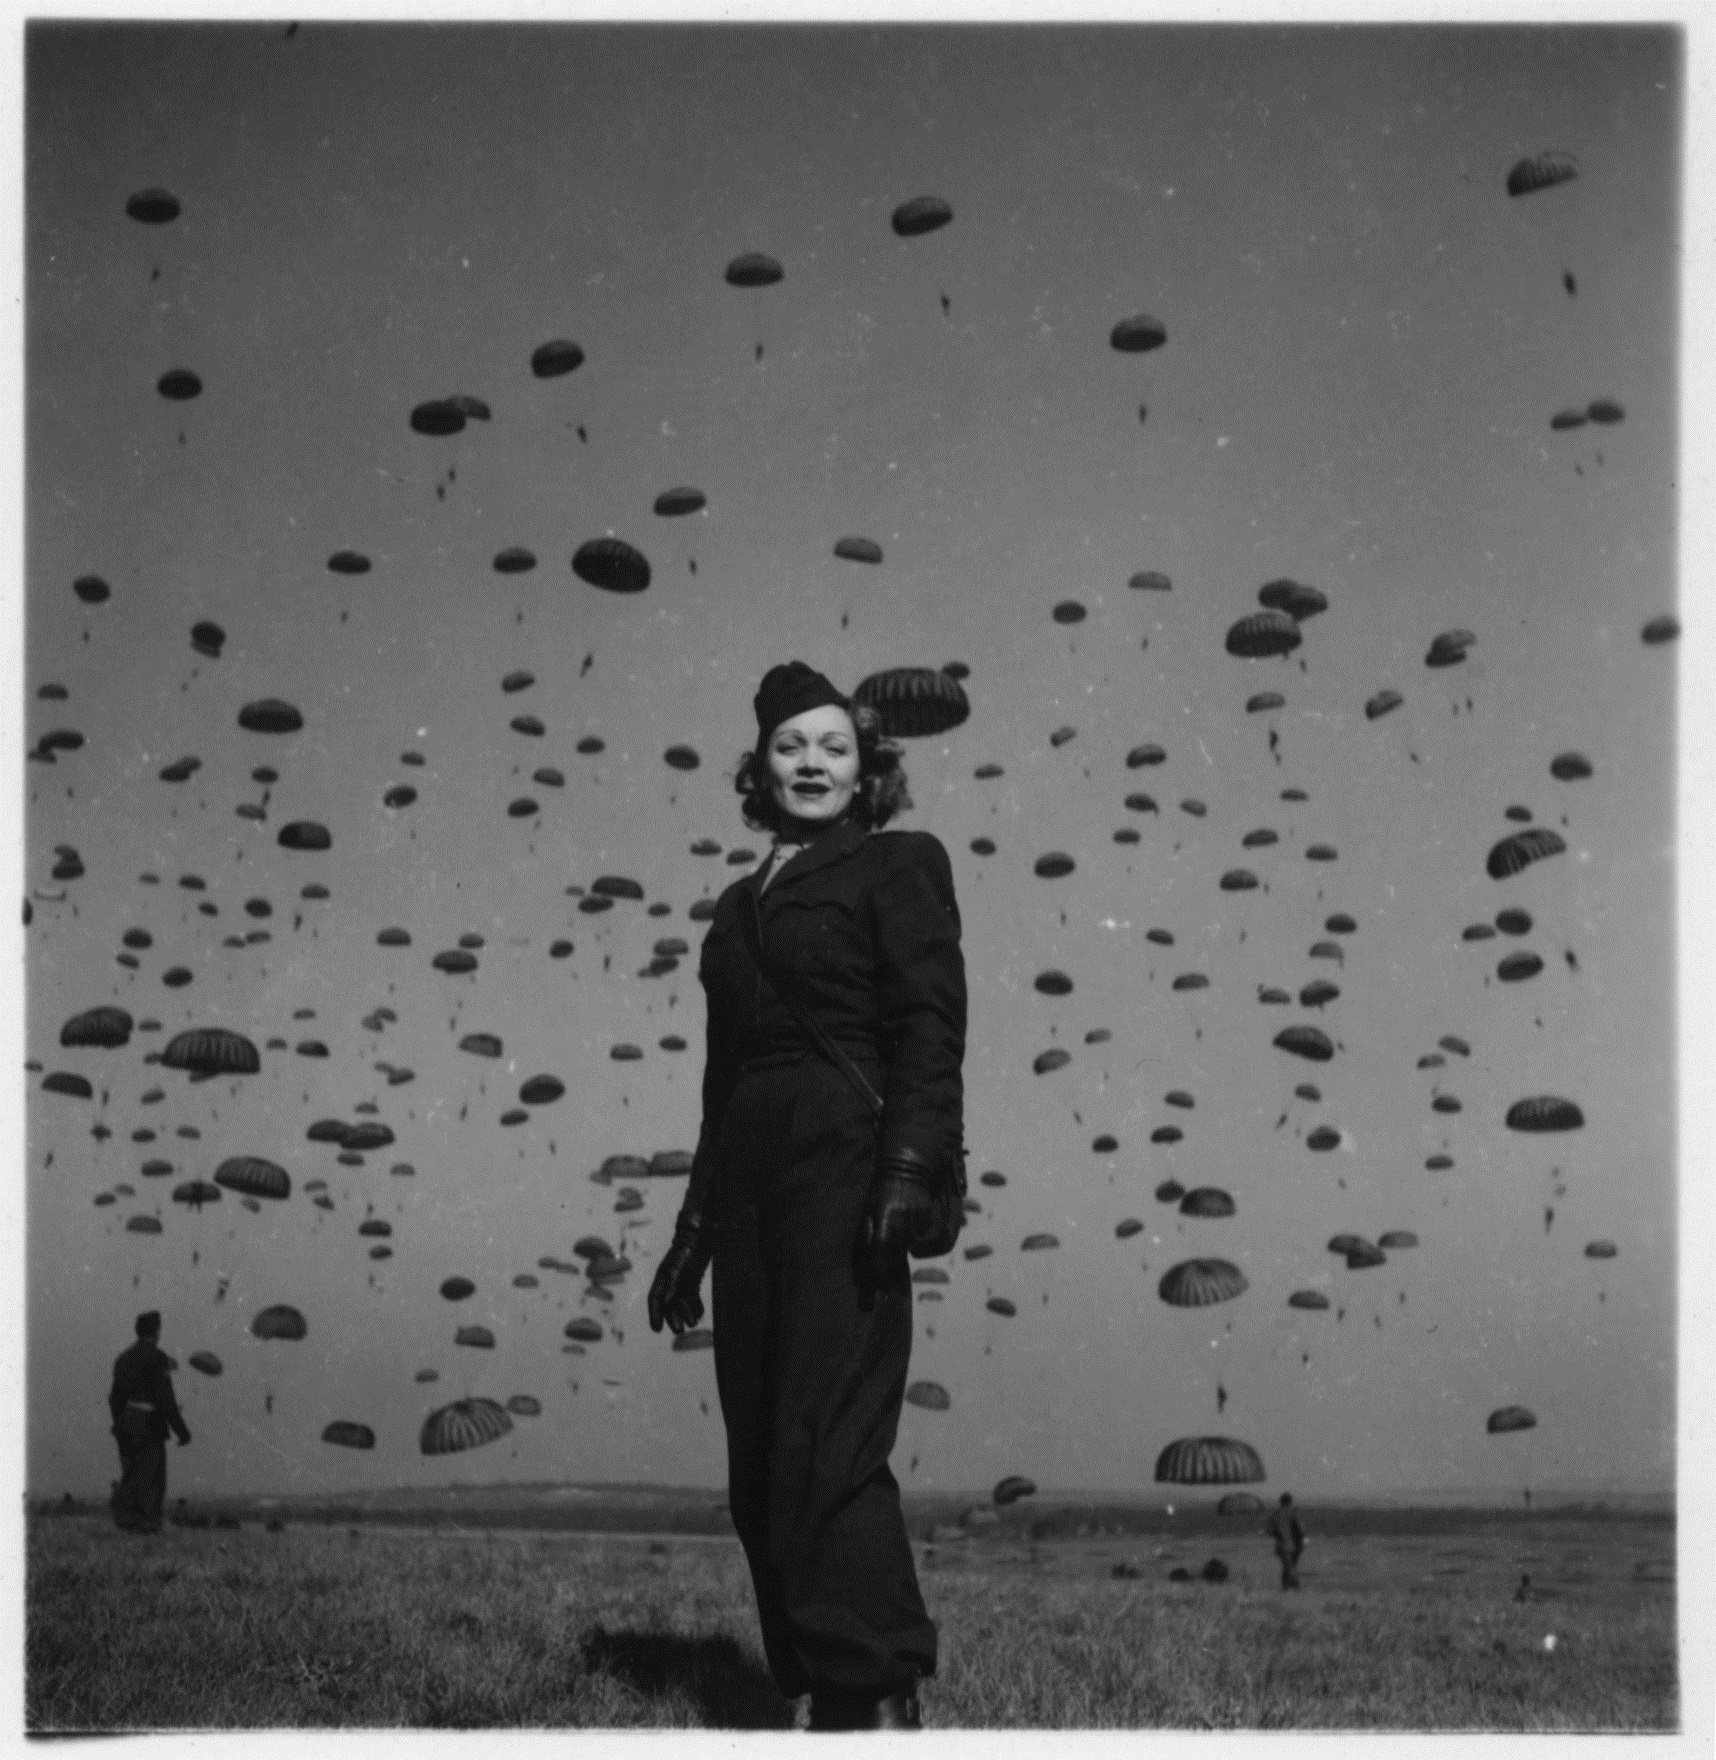 Black and white image of a woman in an army uniform with hundreds of paratroopers in the background